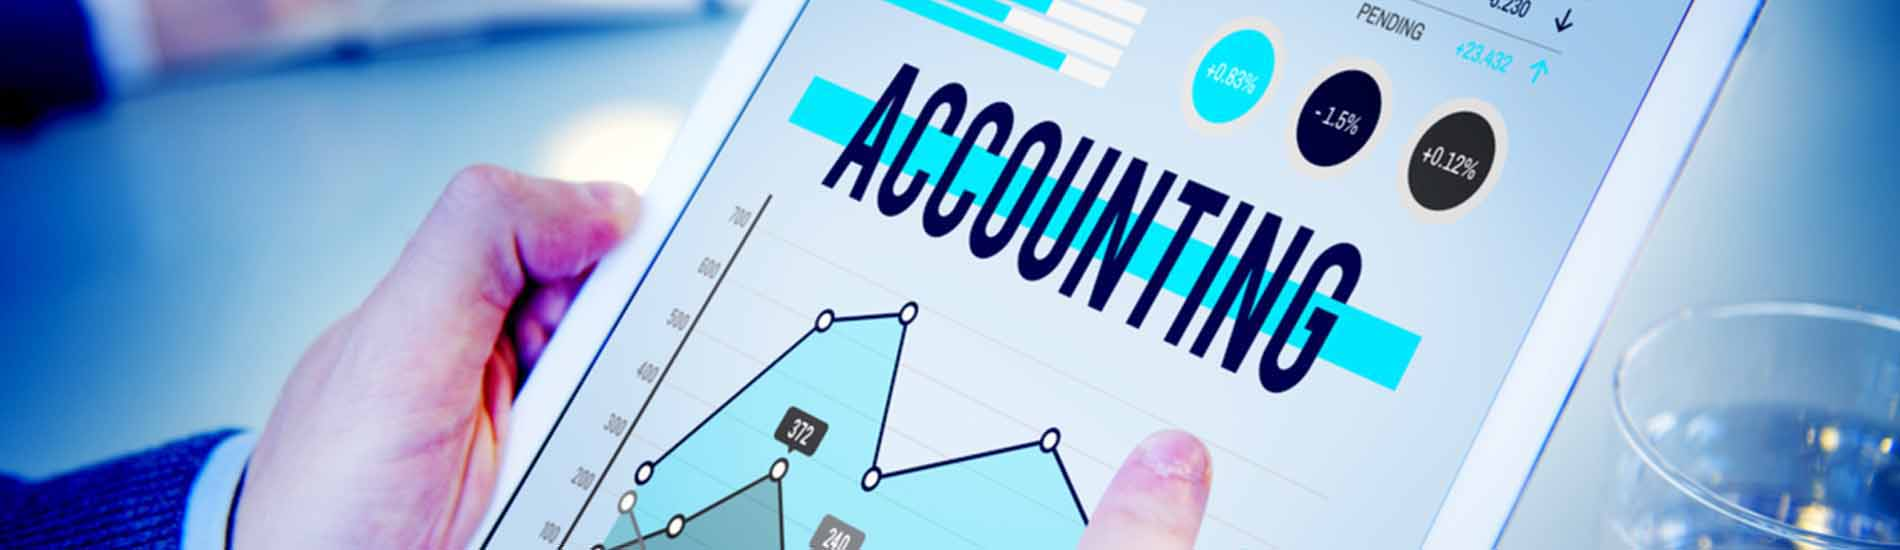 Lowcost Accountants